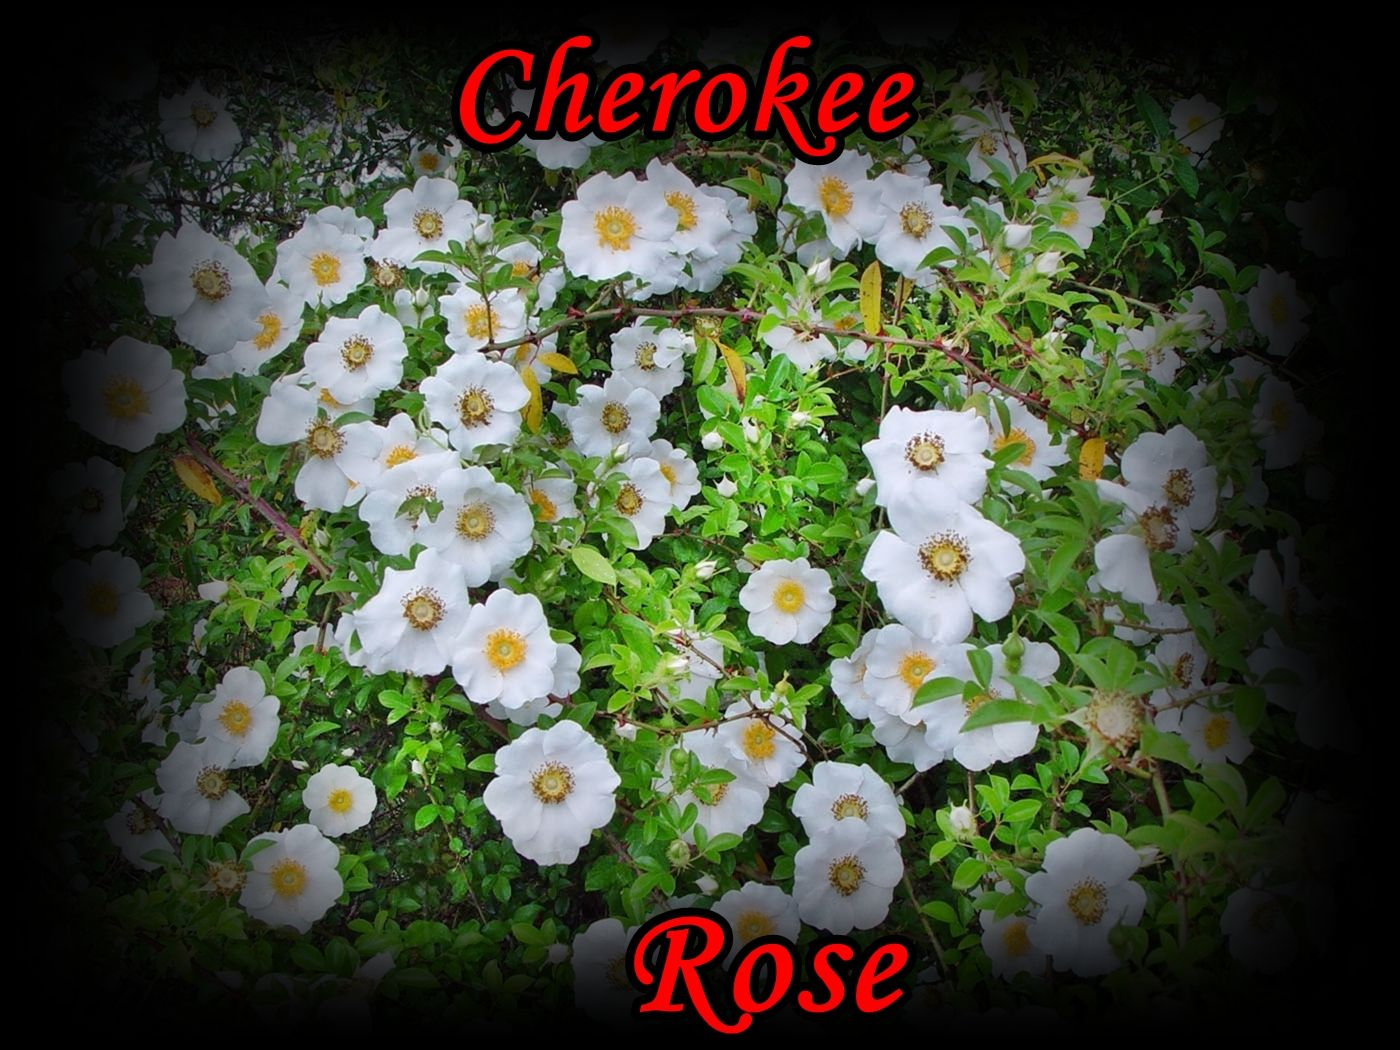 State Flower of Cherokee rose, Garden, Trees to